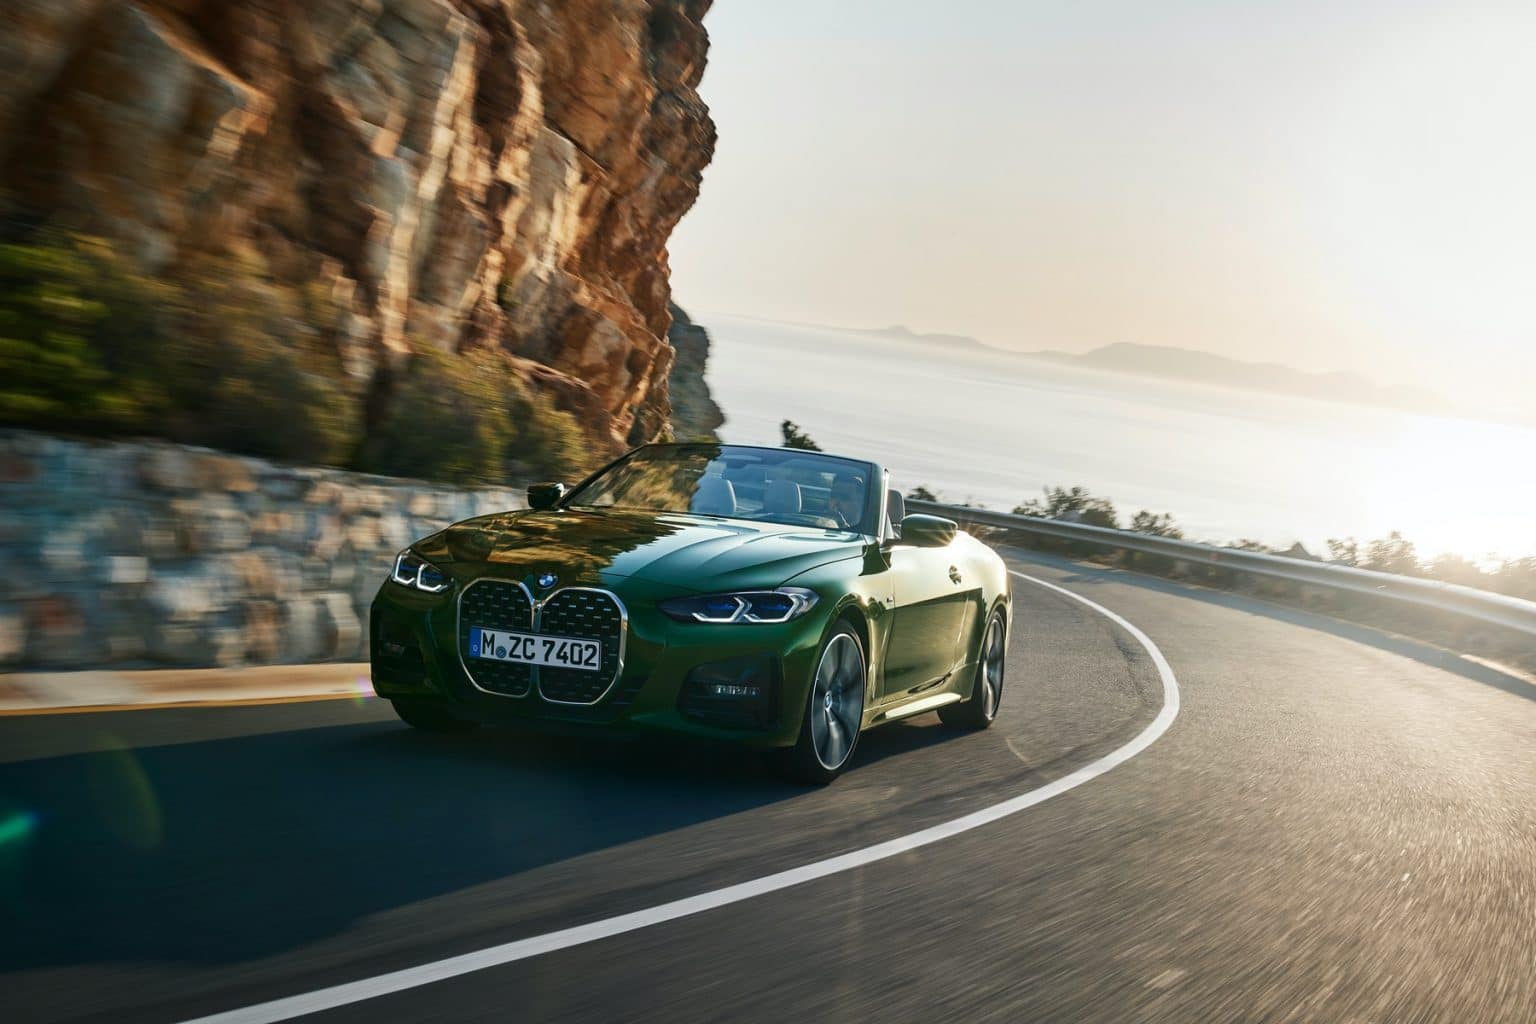 New BMW 4 Series convertible driving on a winding road near the ocean.